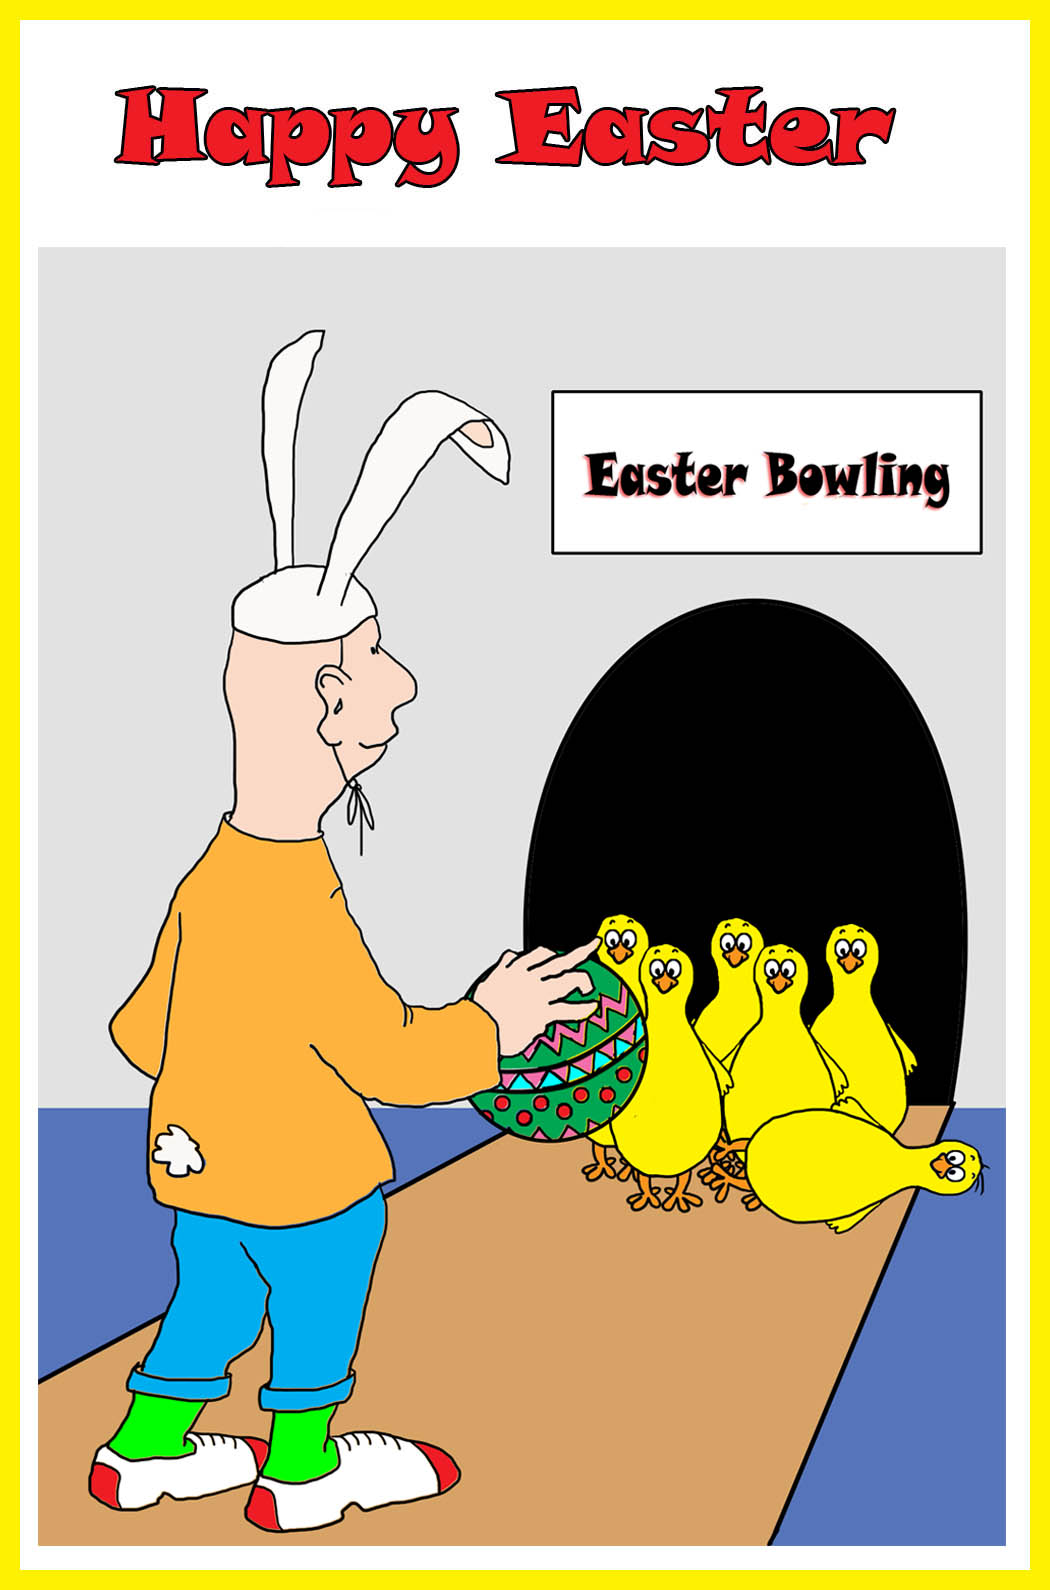 fun Easter card with bowling theme